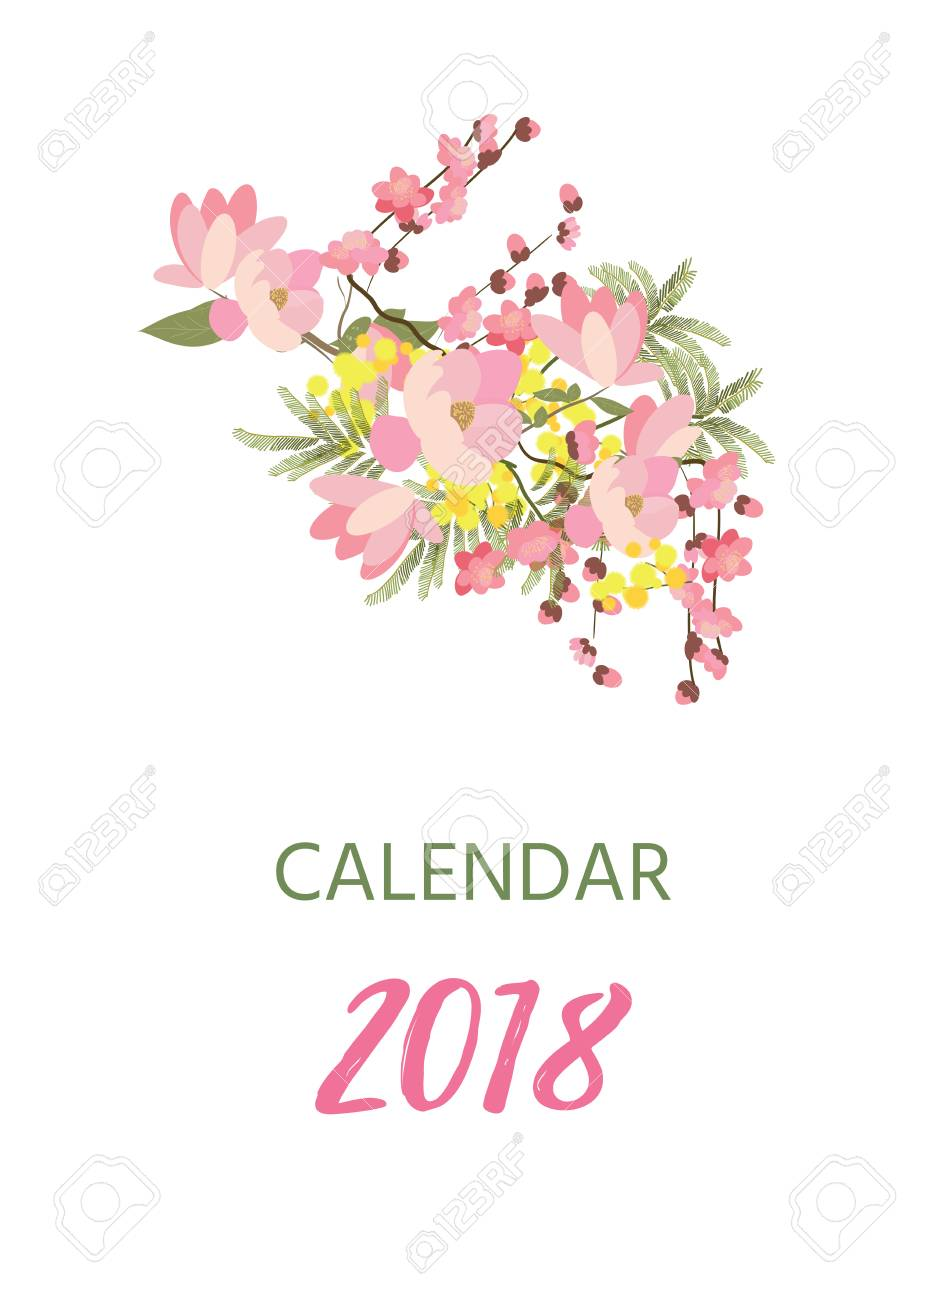 Printable 2018 calendar with pretty colorful flowers royalty free printable 2018 calendar with pretty colorful flowers stock vector 89408812 mightylinksfo